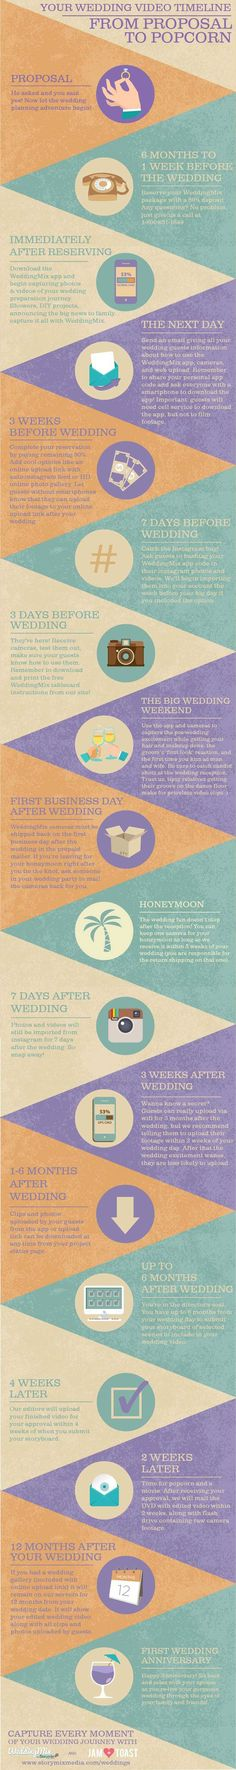 Wedding Video Timeline Infographic | How to Film From Proposal to Popcorn #Weddingvideo